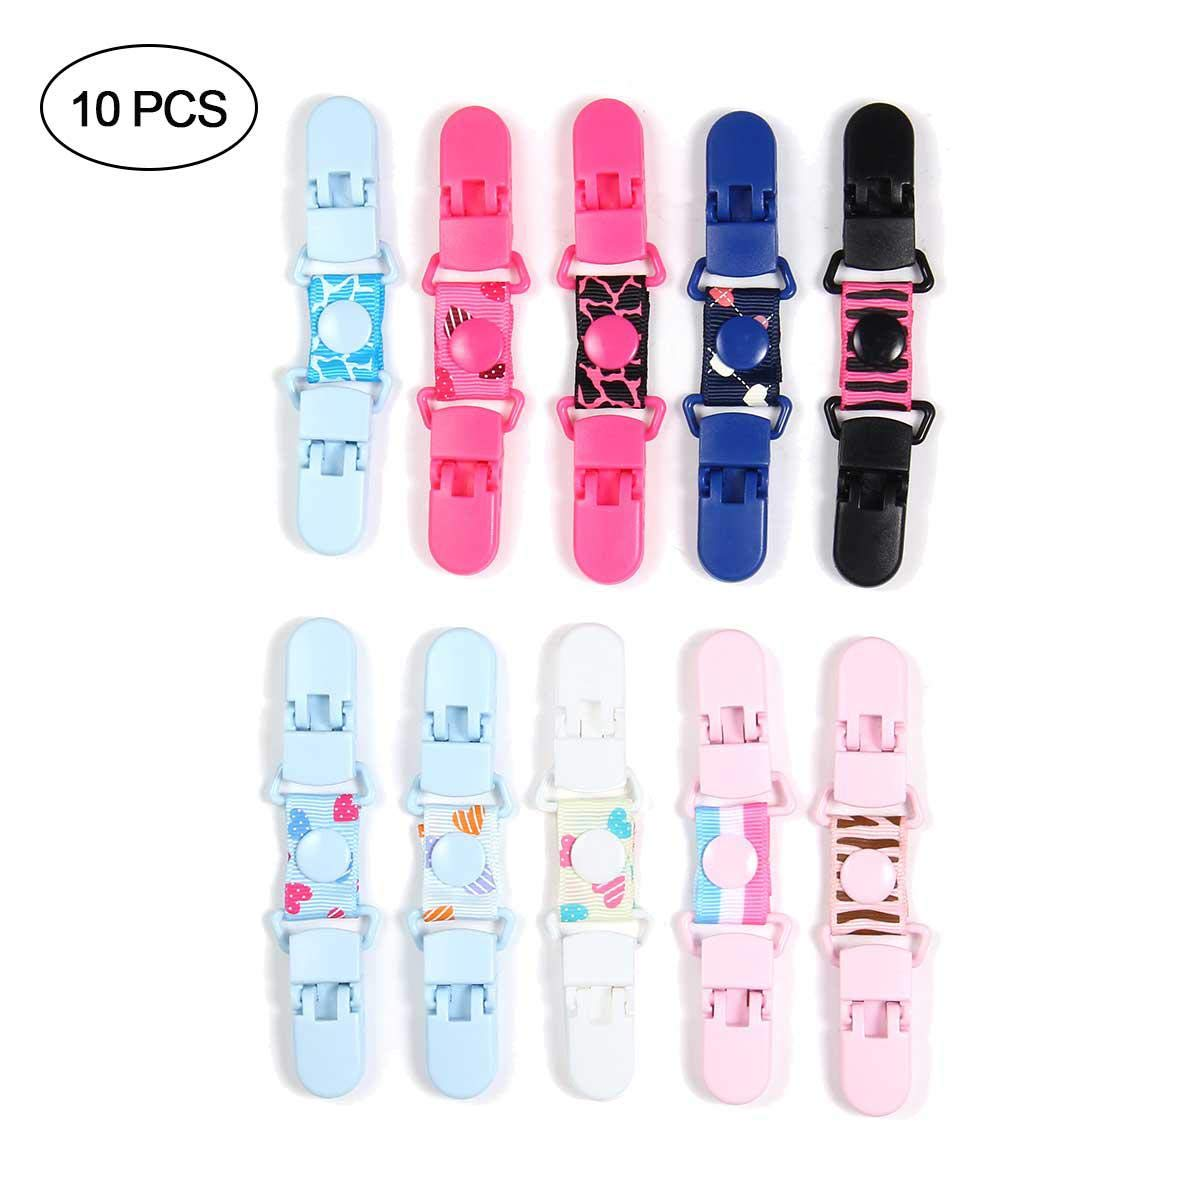 10 Pcs Baby and Kids Strong Stainless Steel Mitten Clips, Extra Strong Stainless Steel Elastic Glove and Mitten Clips Aolvo